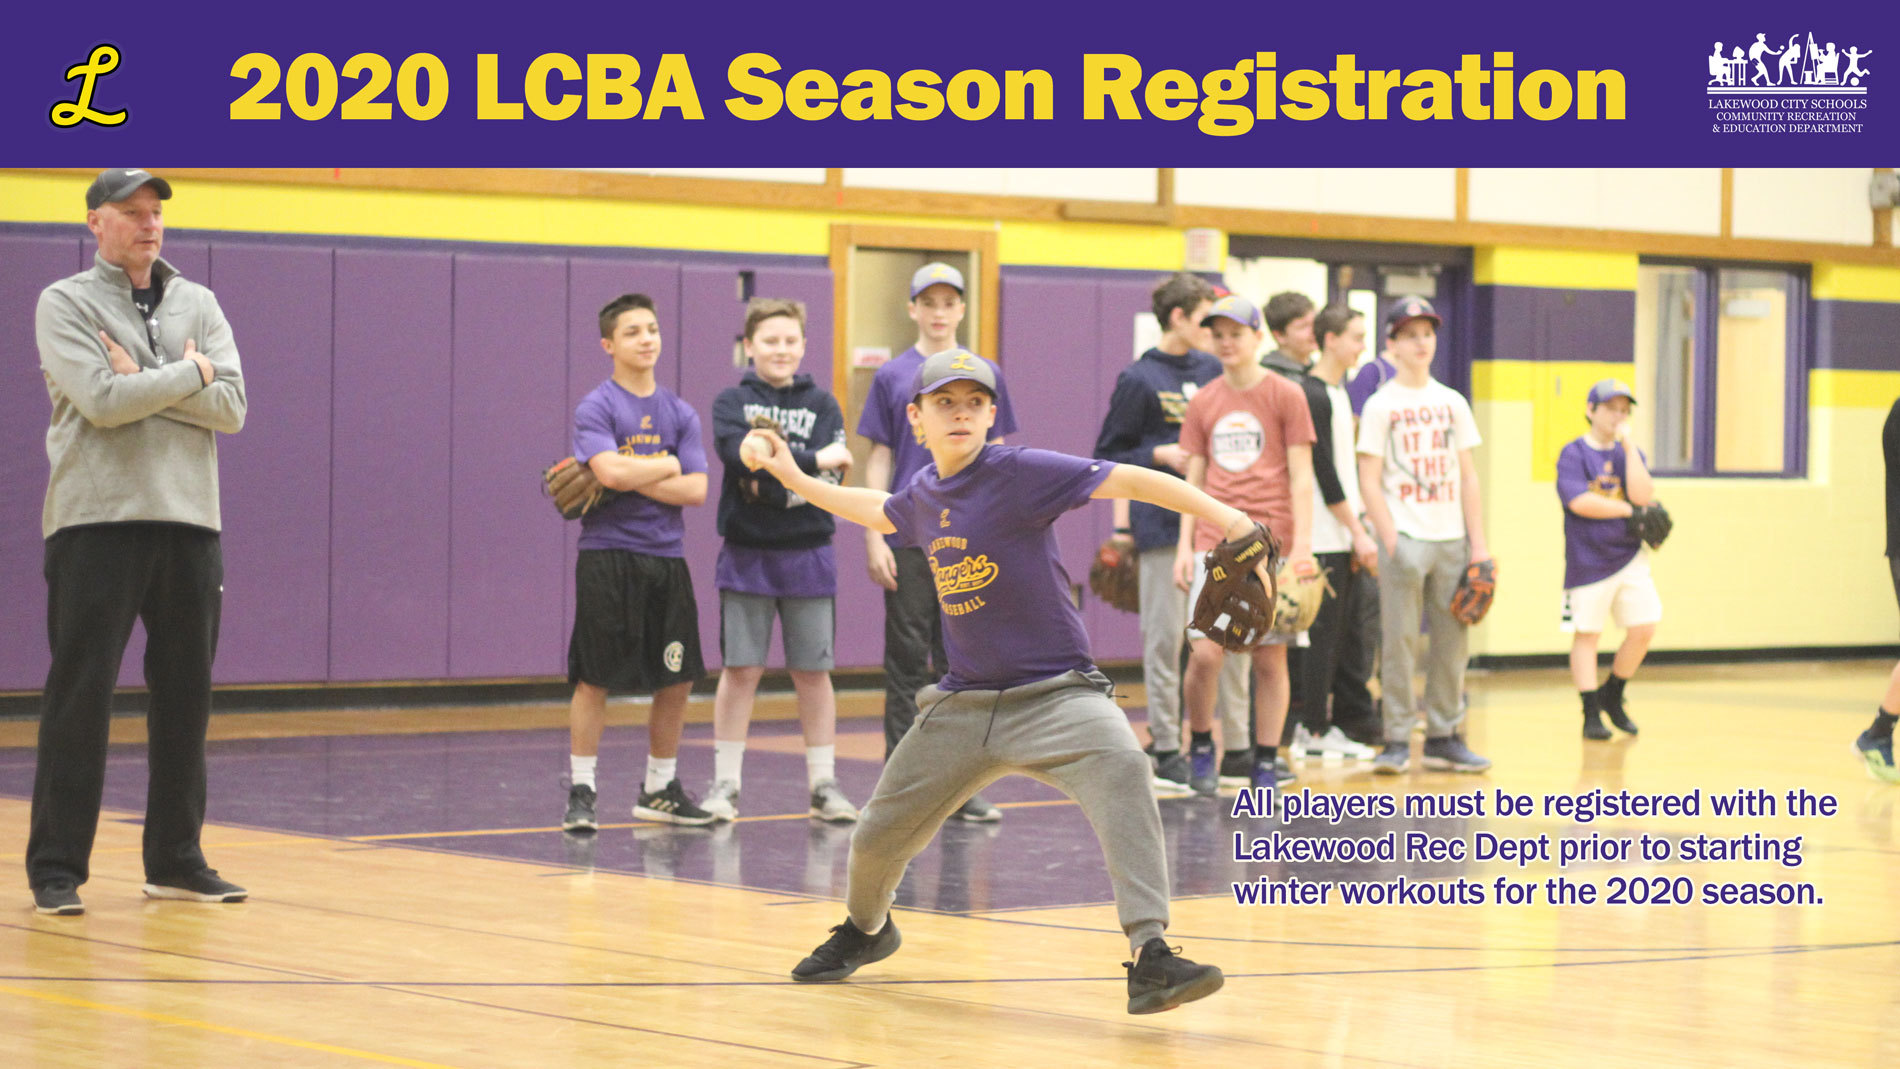 LCBA Registration for 2020 Season